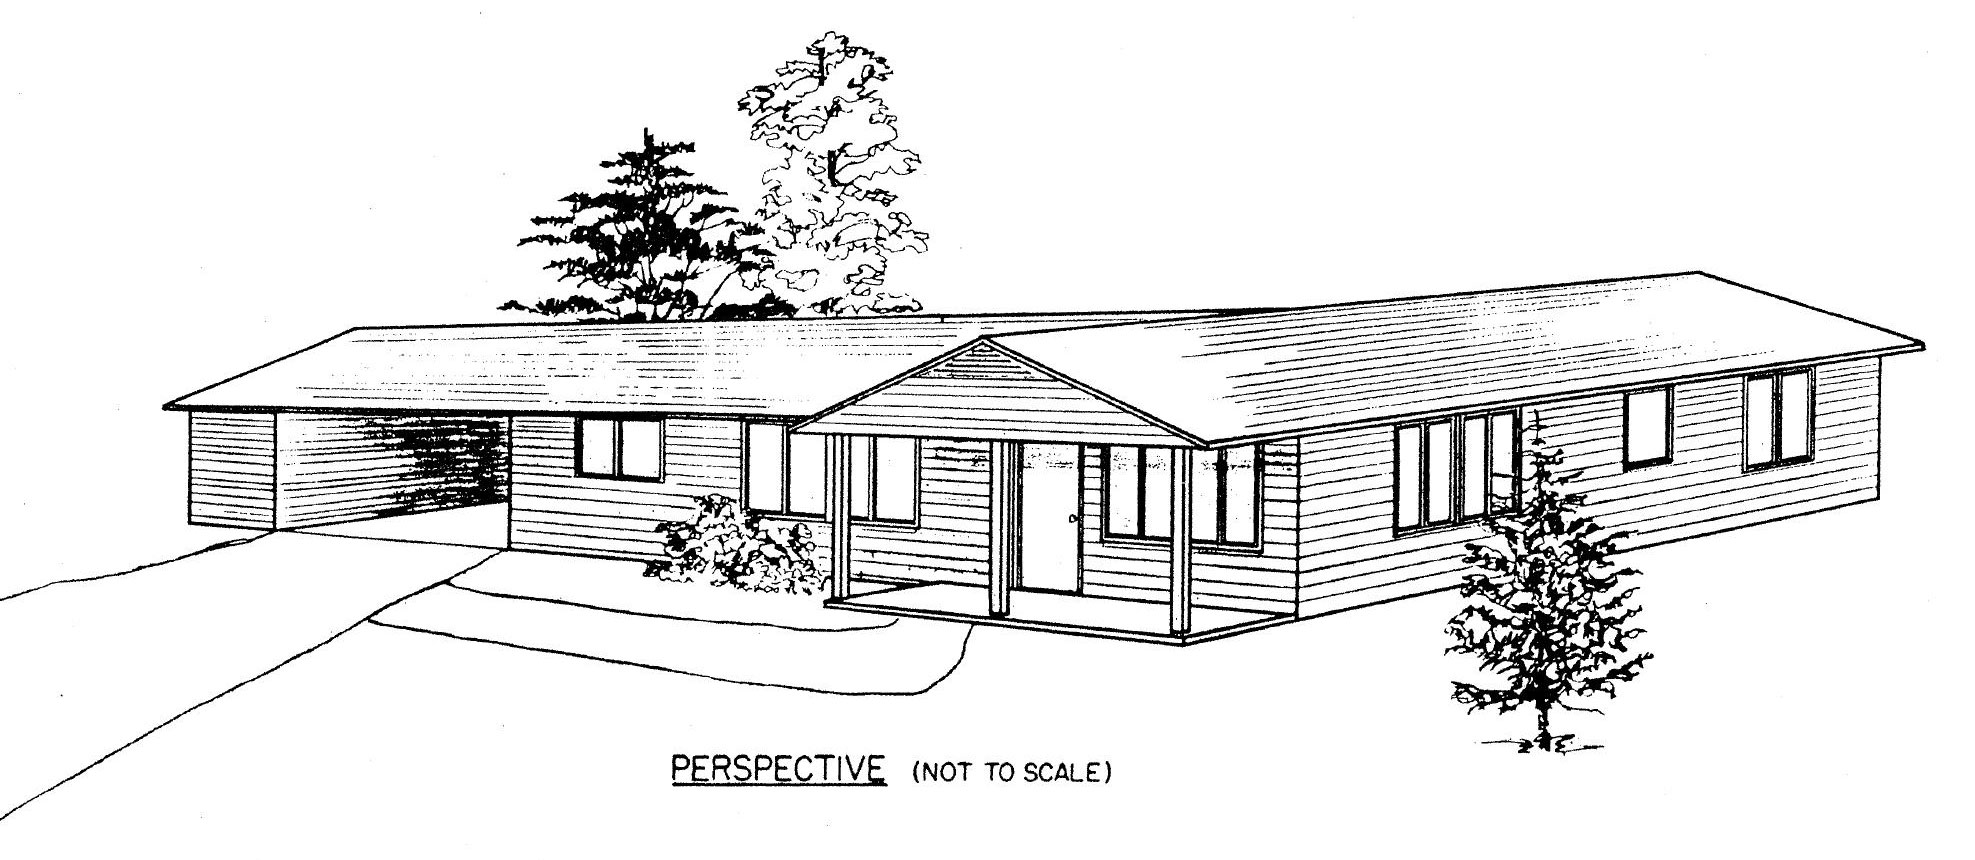 Floor Plans For Ranch Style Homes : Carport for a ranch style home native garden design